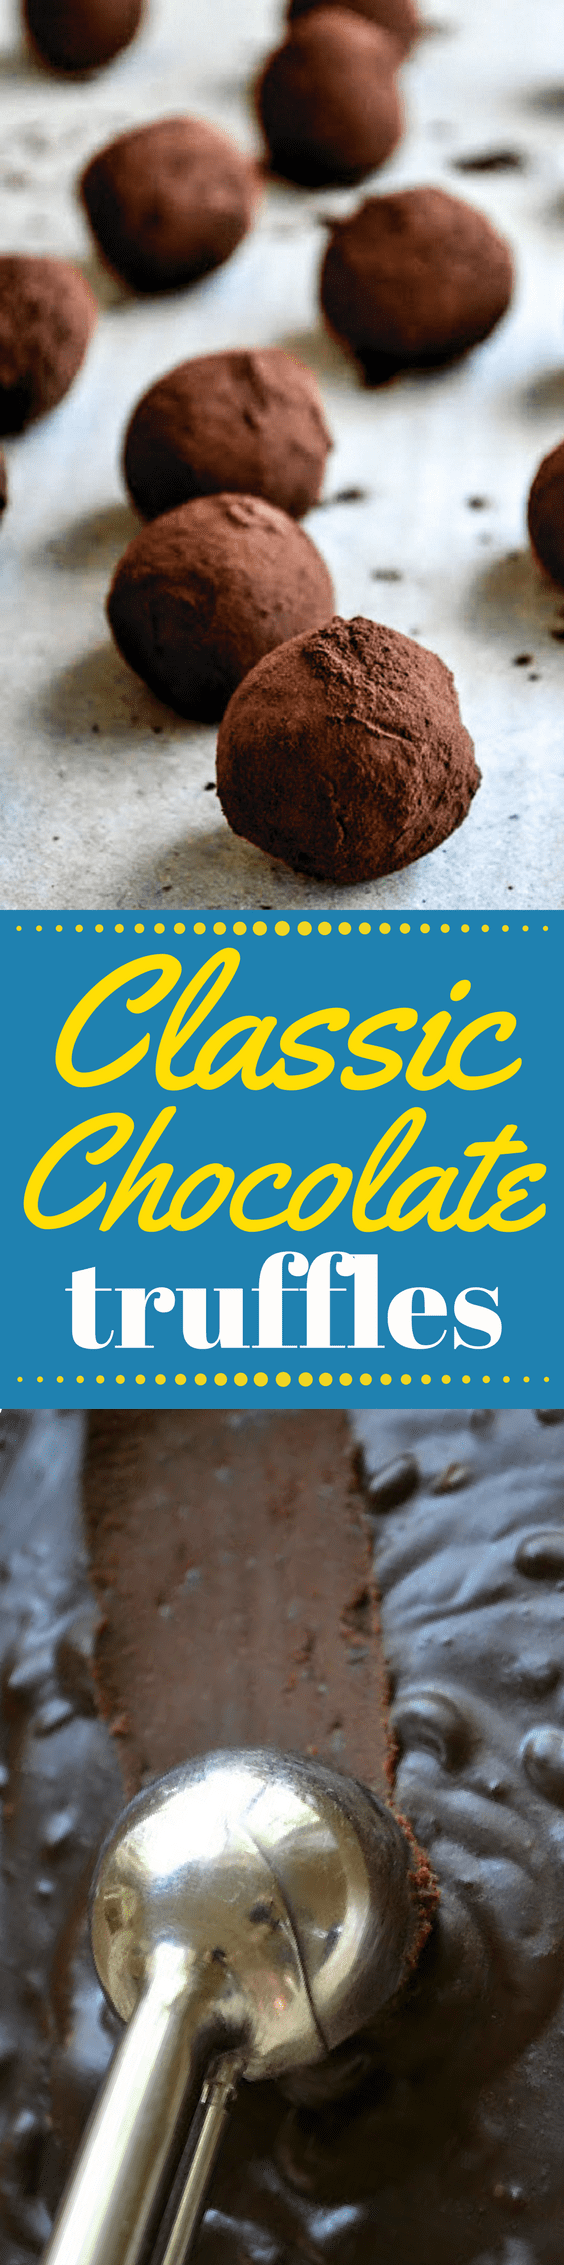 Like a great cup of coffee, or a perfect scrambled egg, everybody needs to know how to make The Classic Chocolate Truffle! ~ theviewfromgreatisland.com